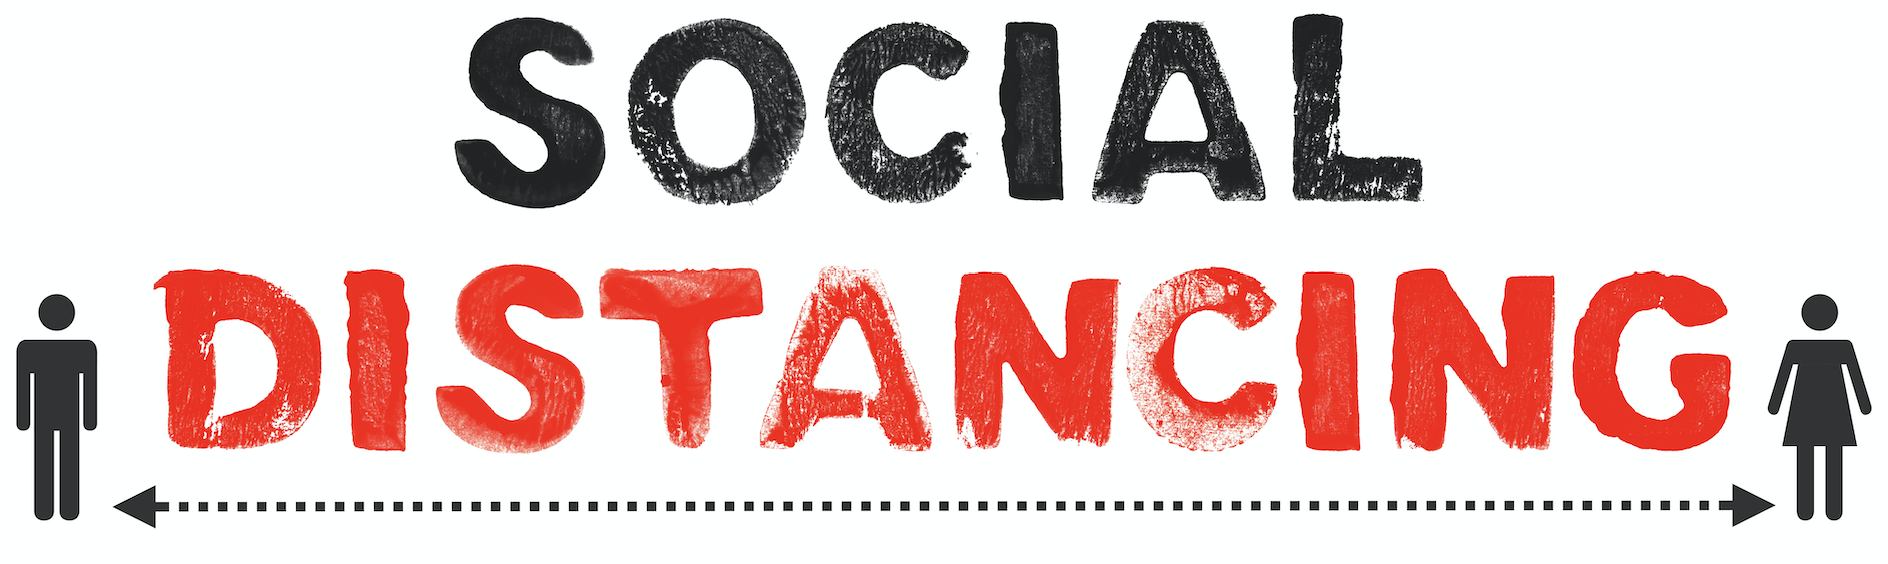 A banner designed to promote social distancing.